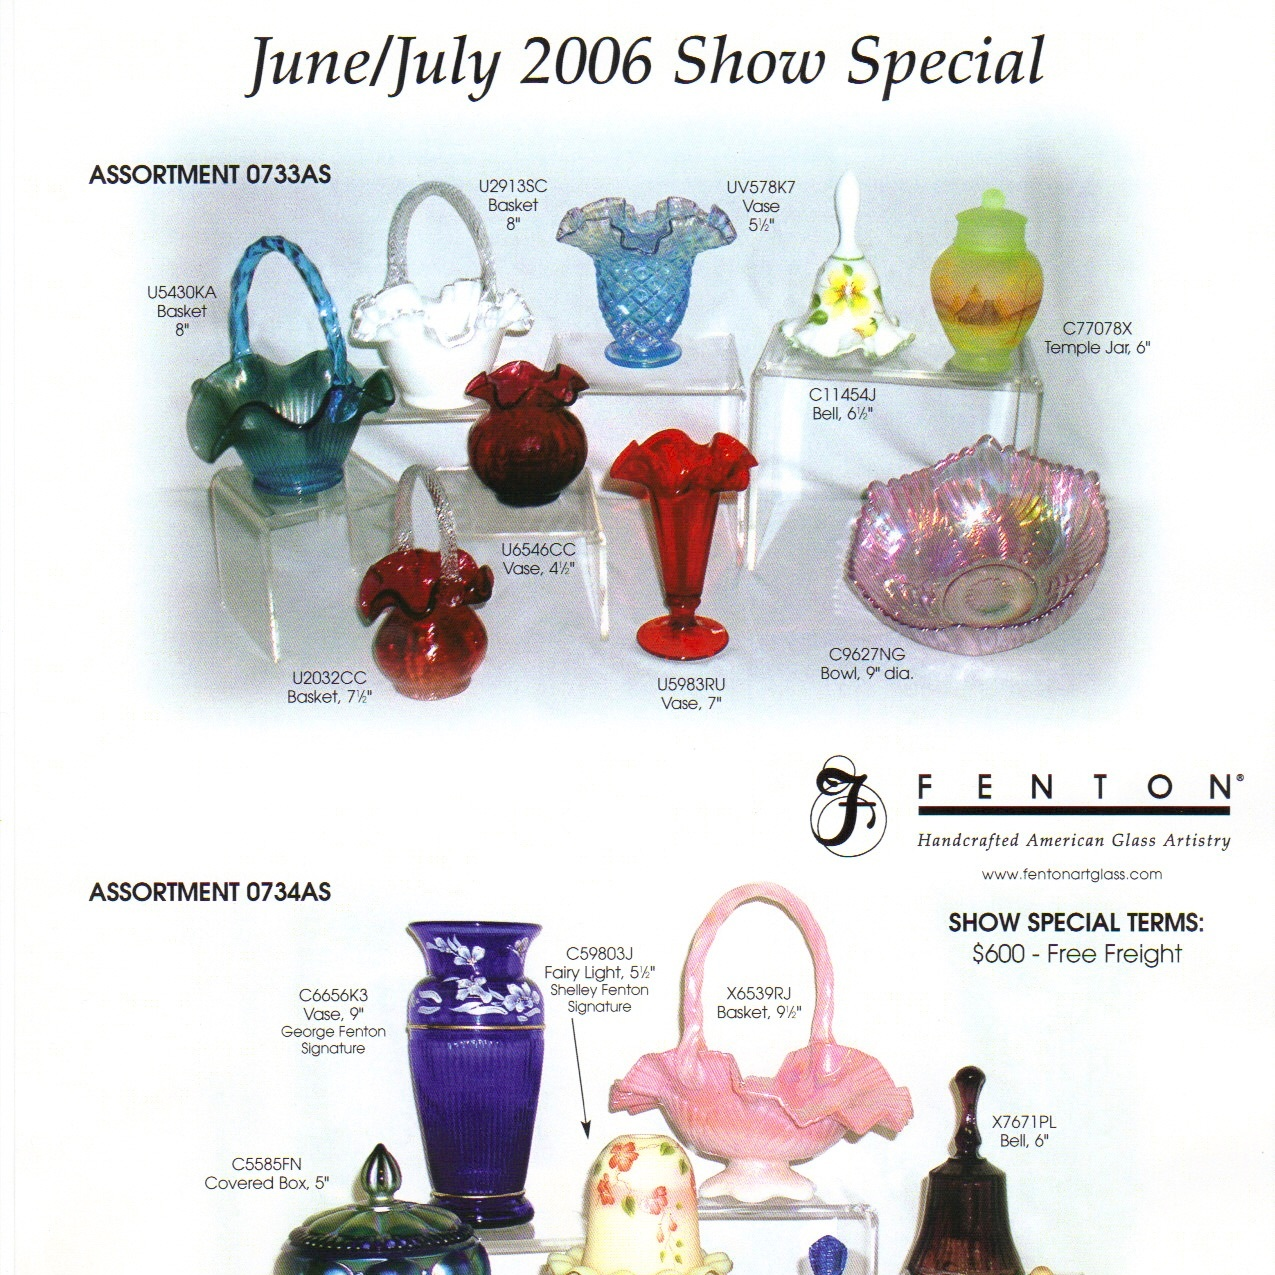 2006 June-July Show Special